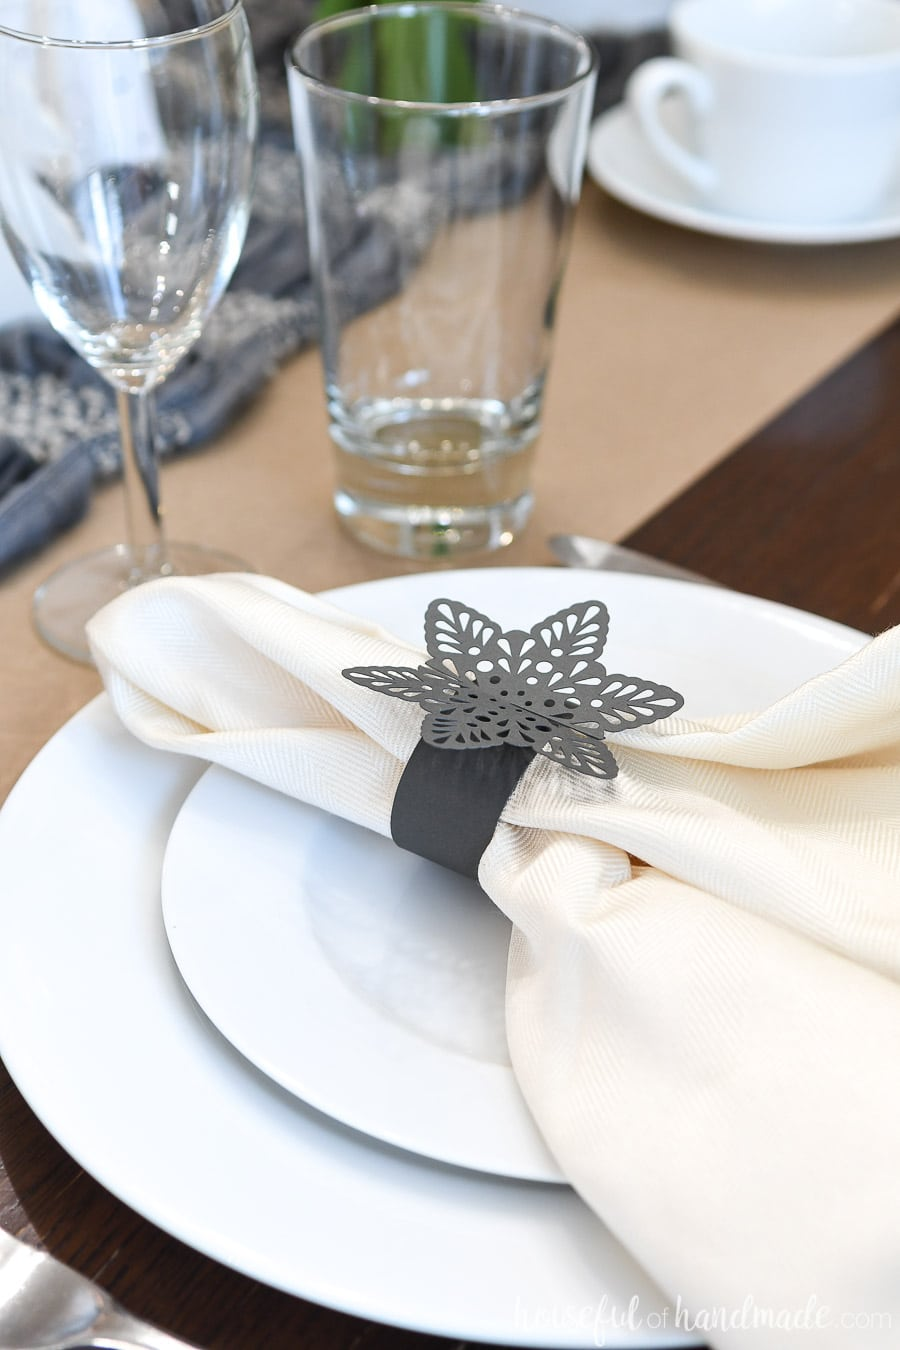 Close-up view of the table setting on the winter tablescape with snowflake paper napkin rings on the plates.